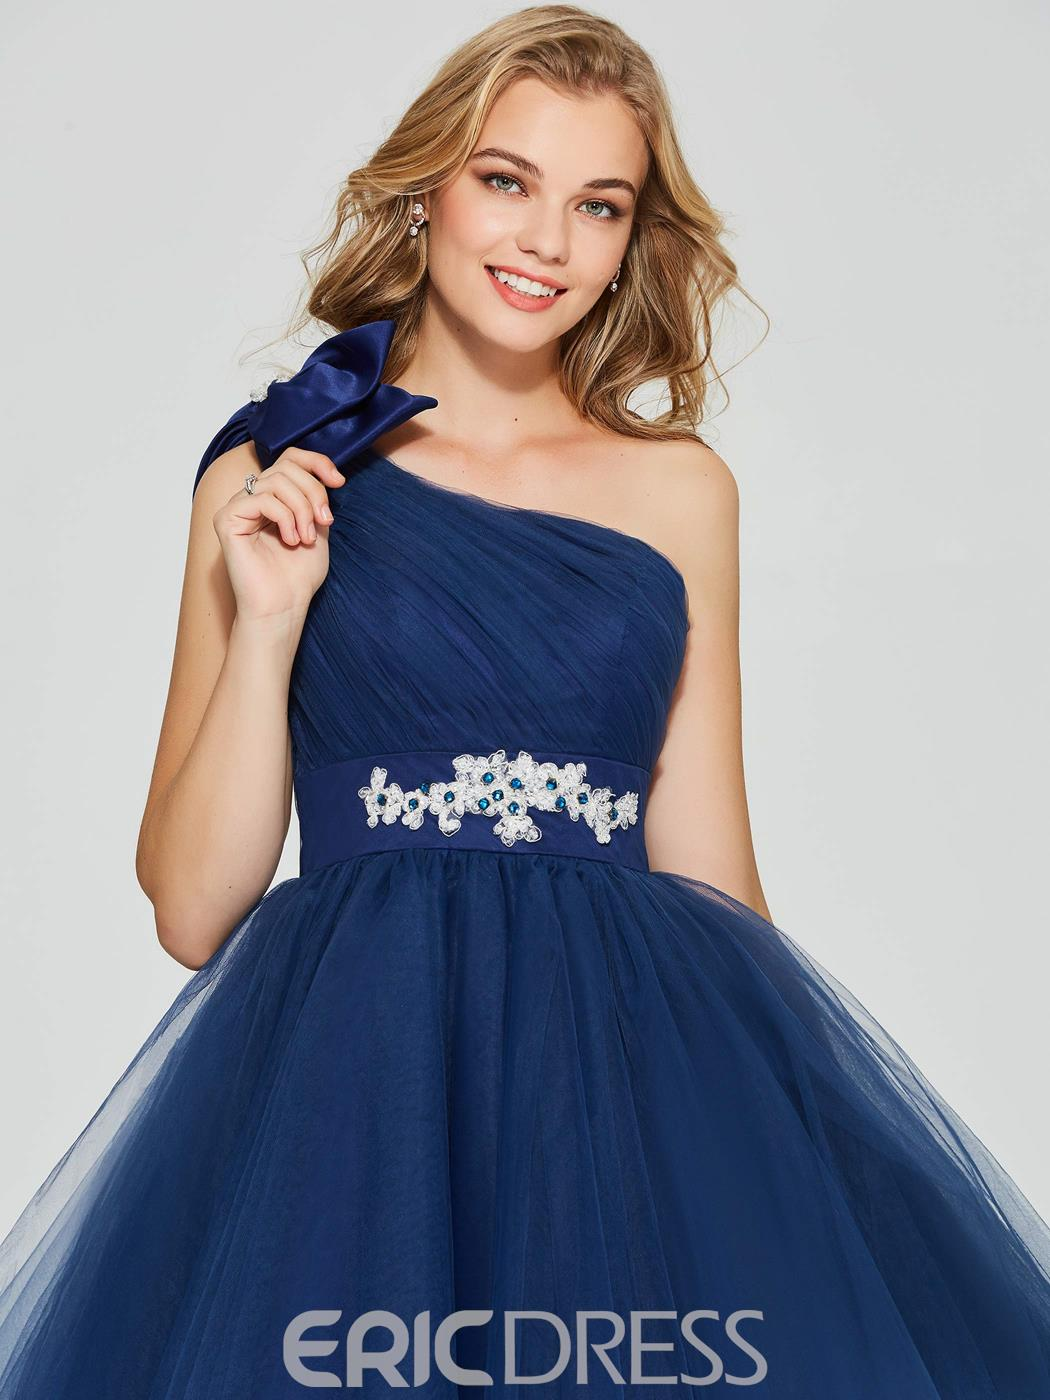 Ericdress A Line One Shoulder Short Homecoming Dress